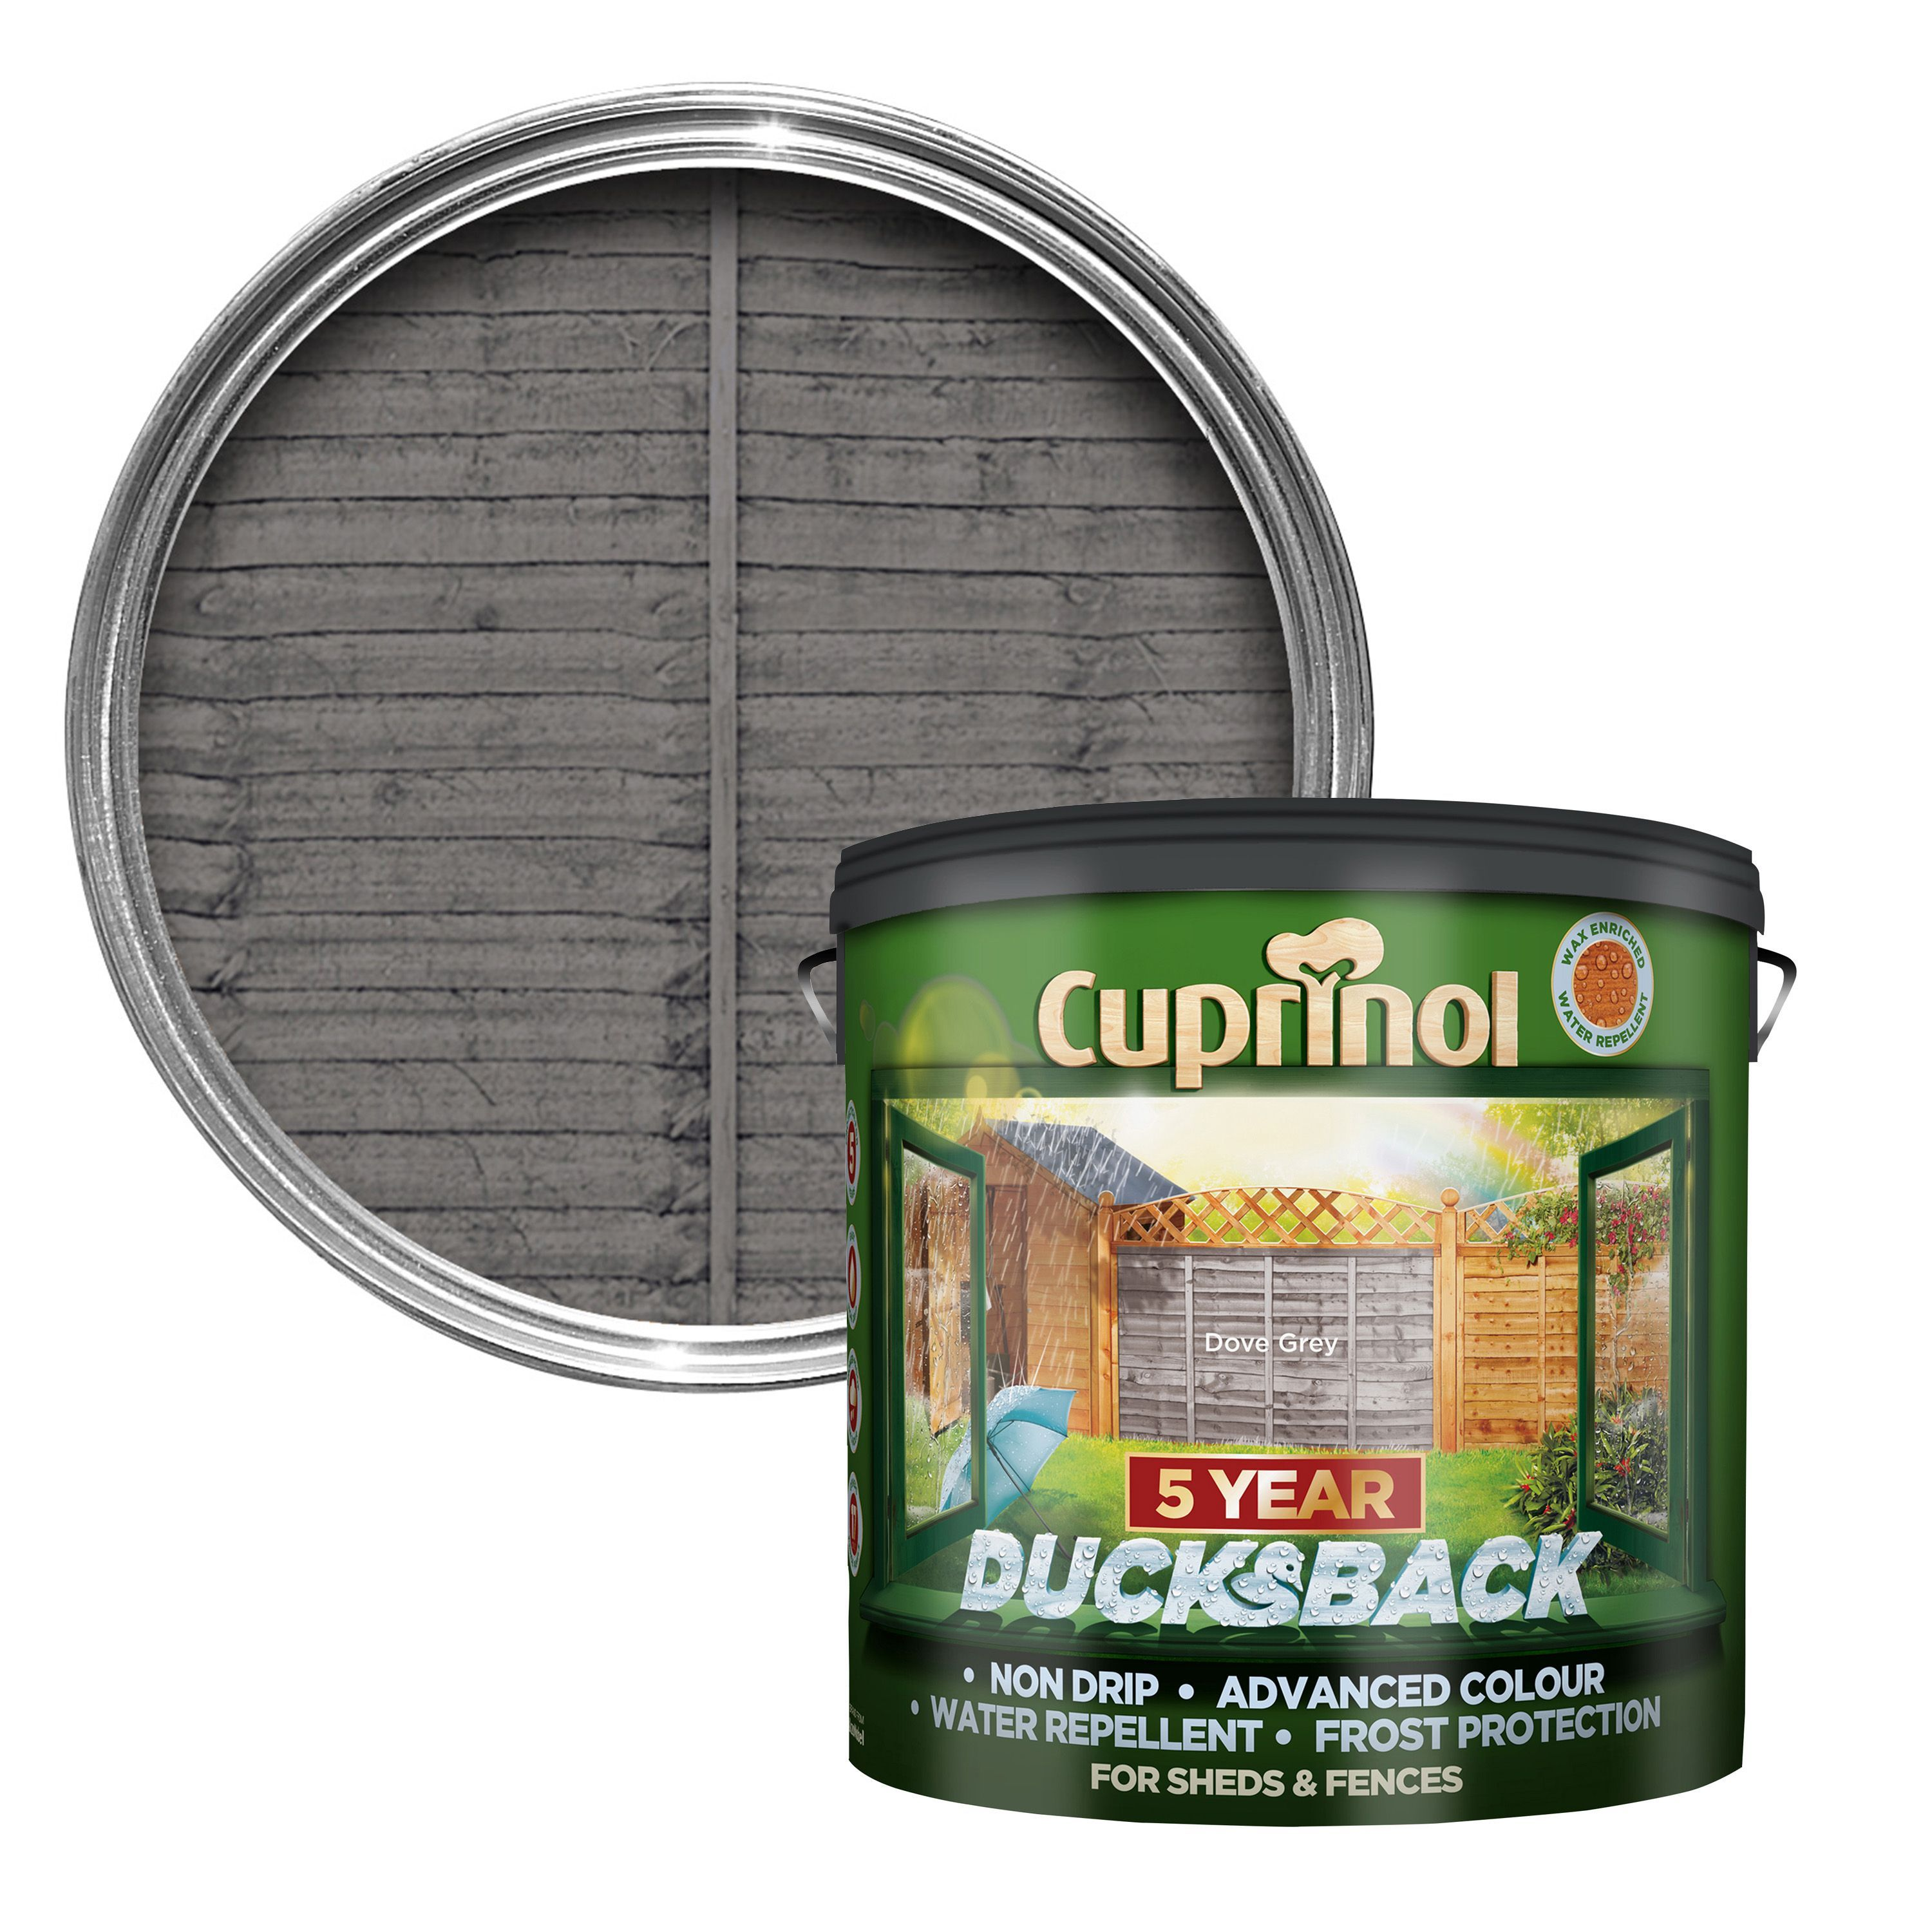 Cuprinol ducksback grey shed fence treatment 9l departments cuprinol ducksback grey shed fence treatment baanklon Image collections